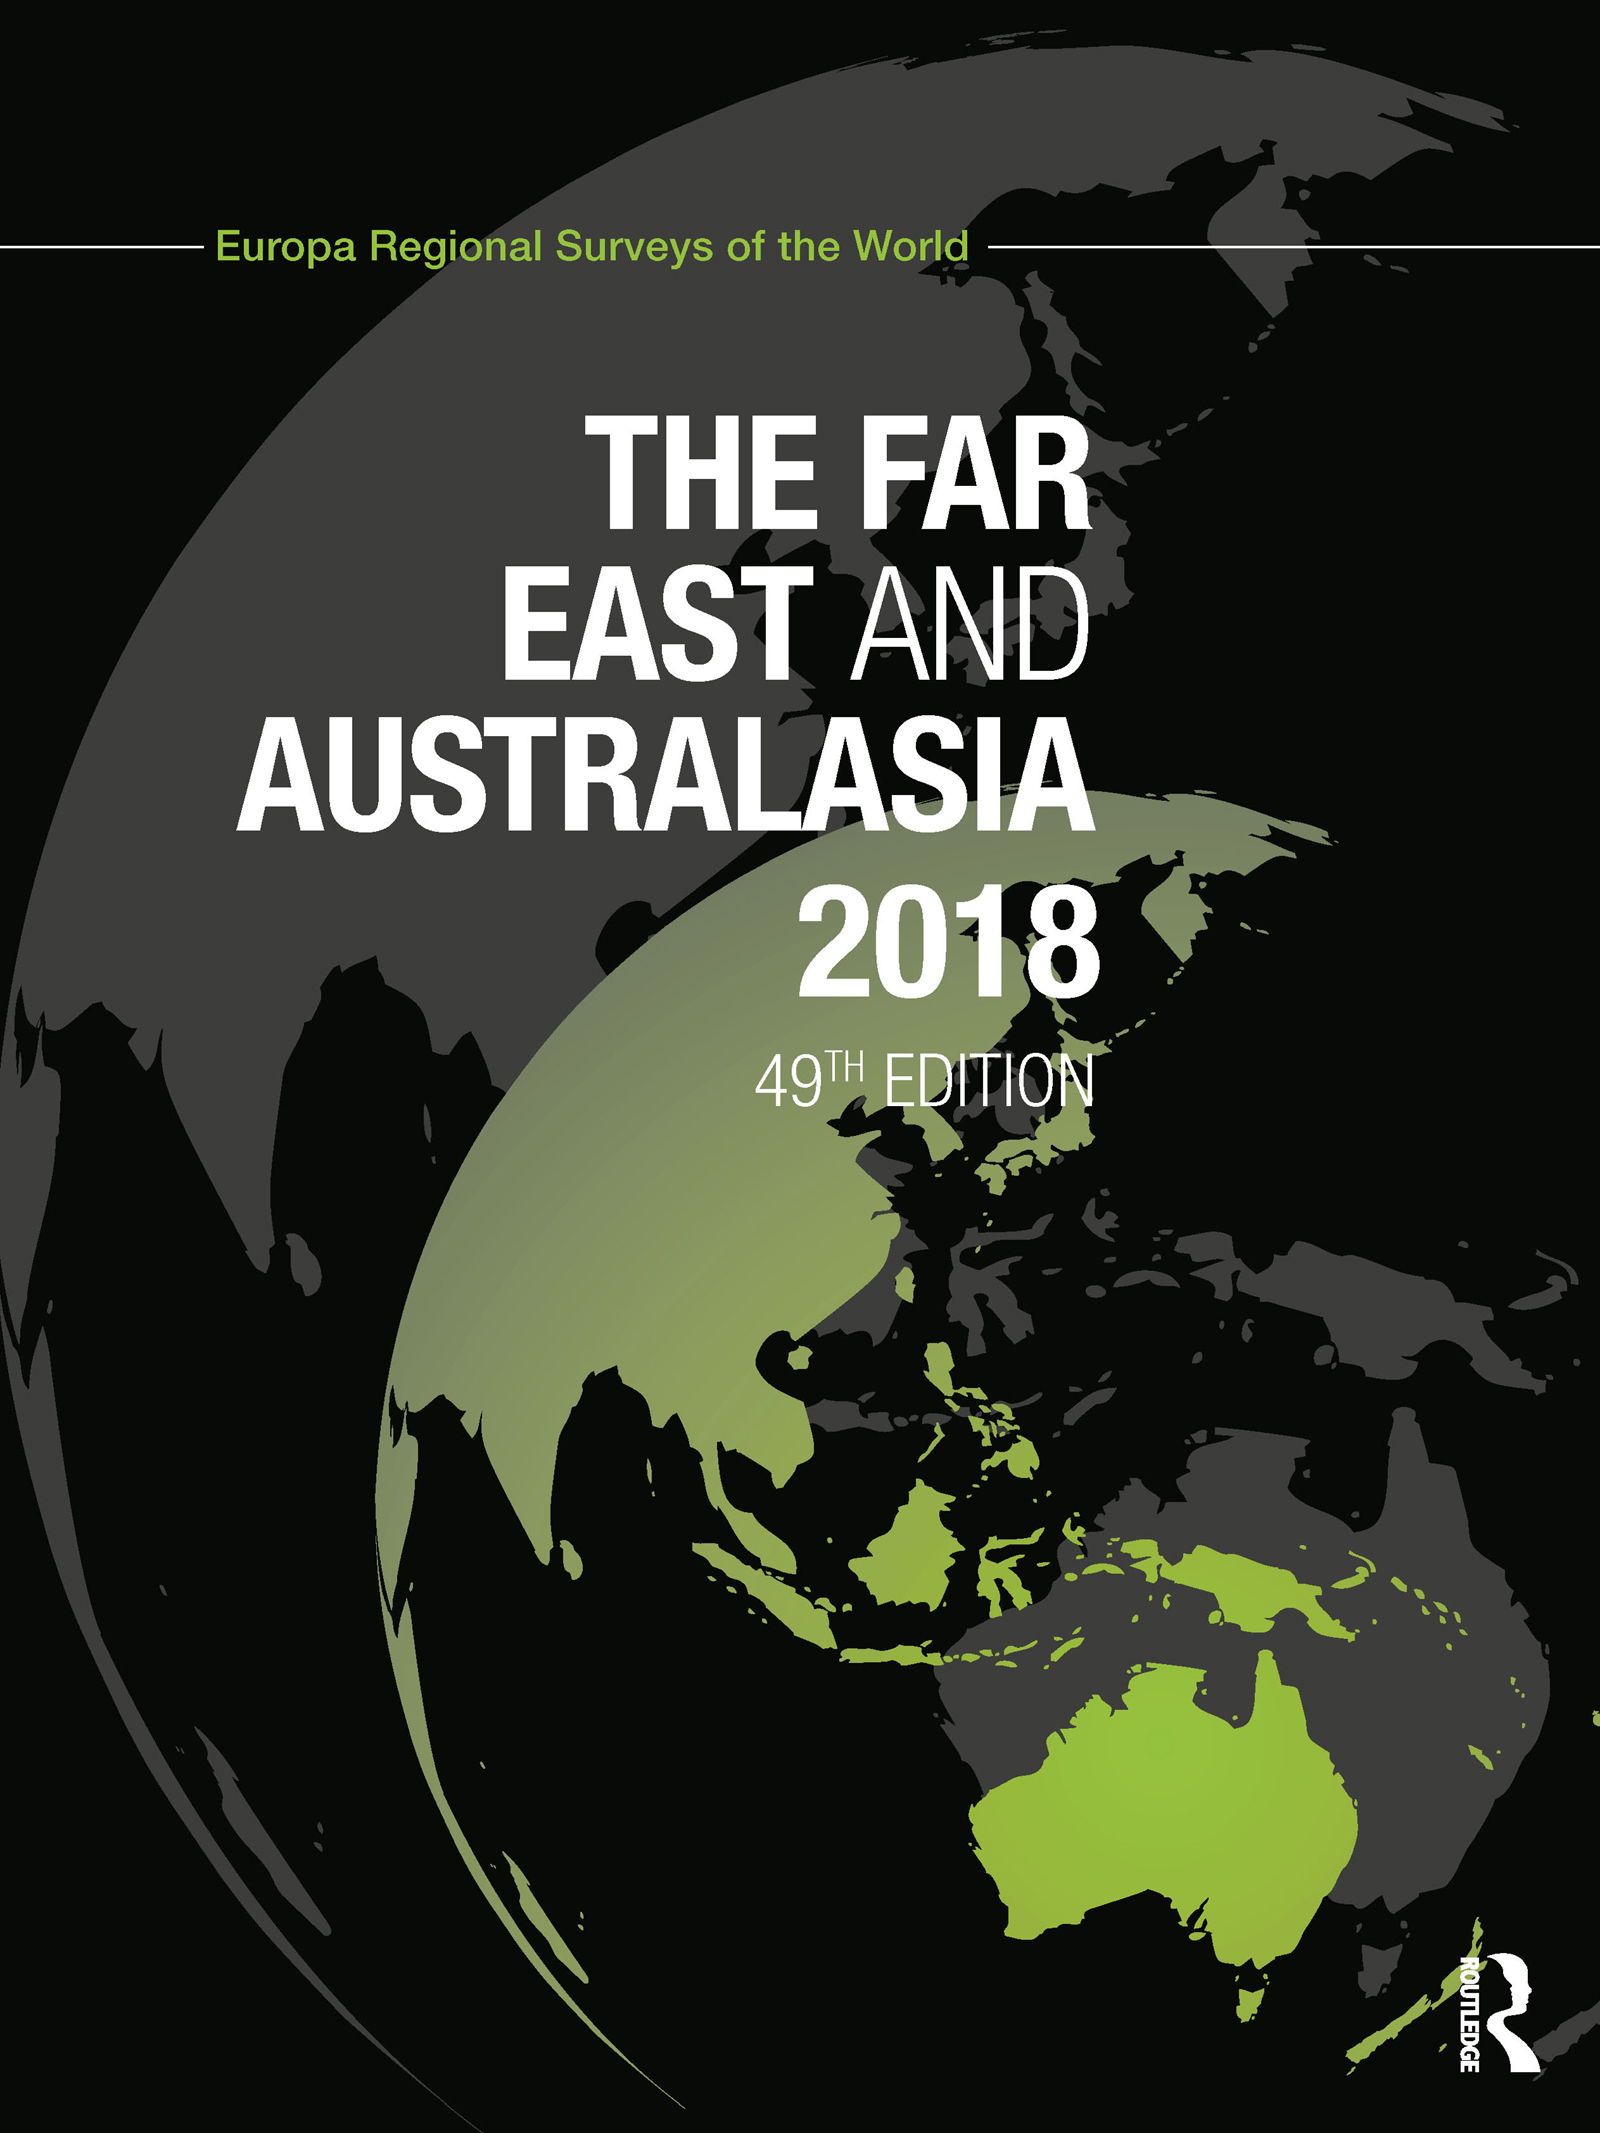 The Far East and Australasia 2018 book cover